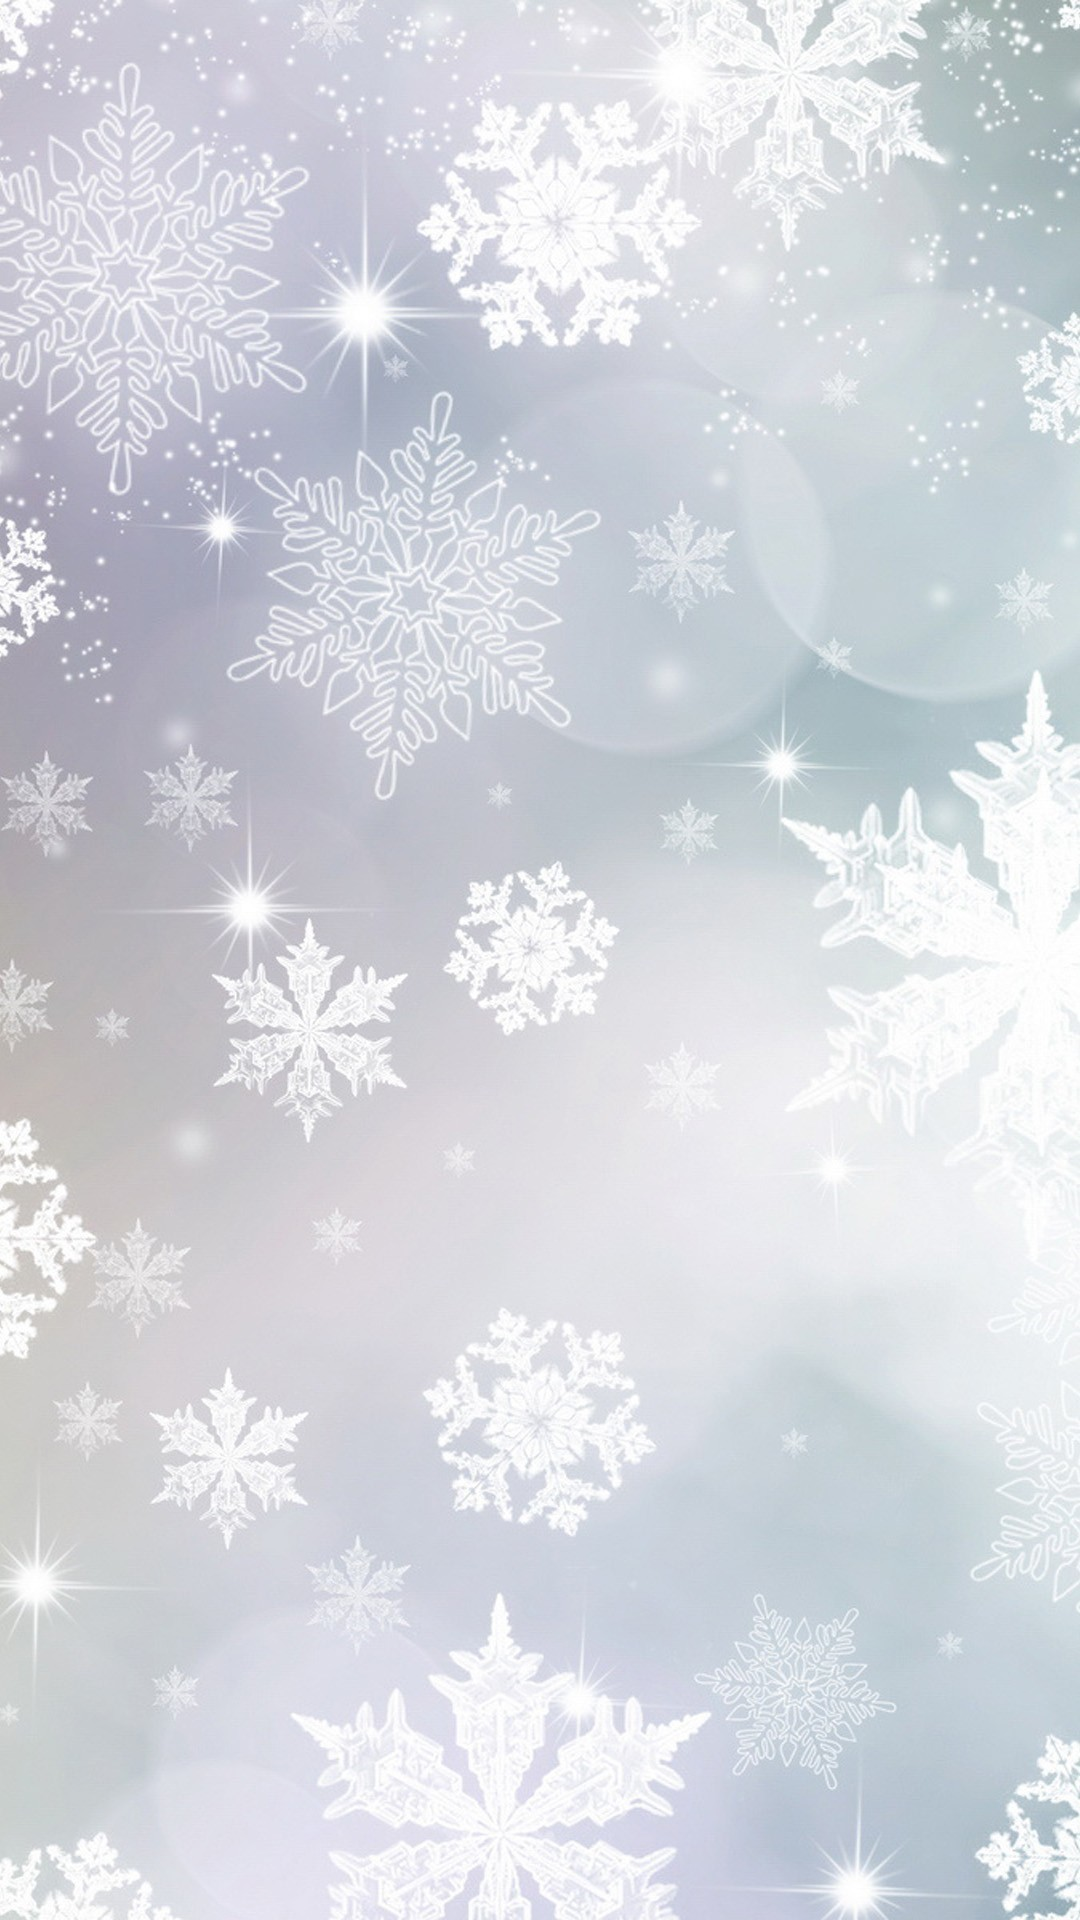 Wallpaper backgrounds · Christmas themed iPhone 6